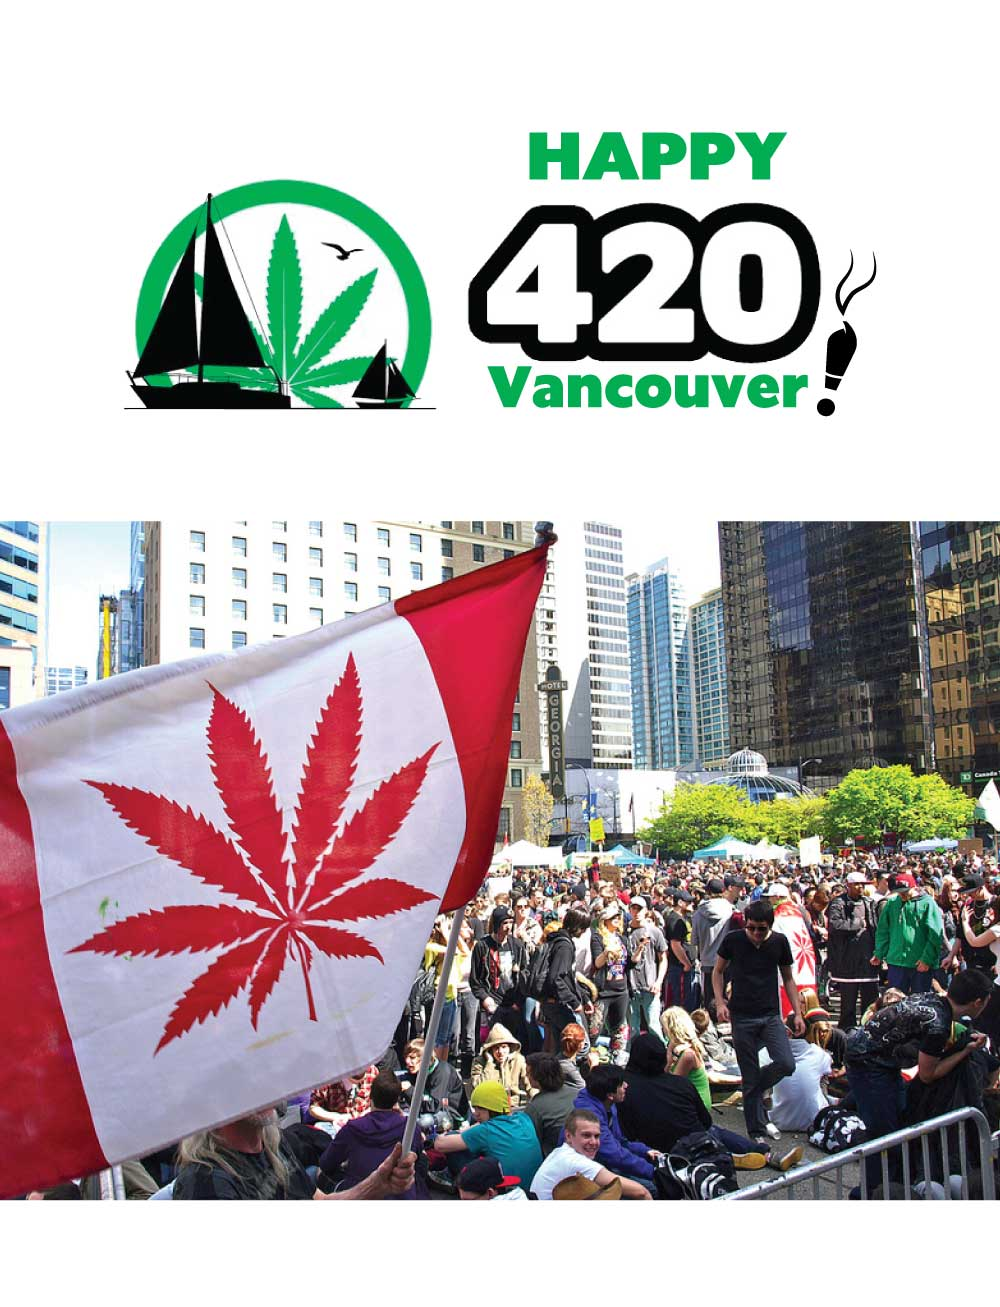 420 Vancouver! We're coming for you this weekend!